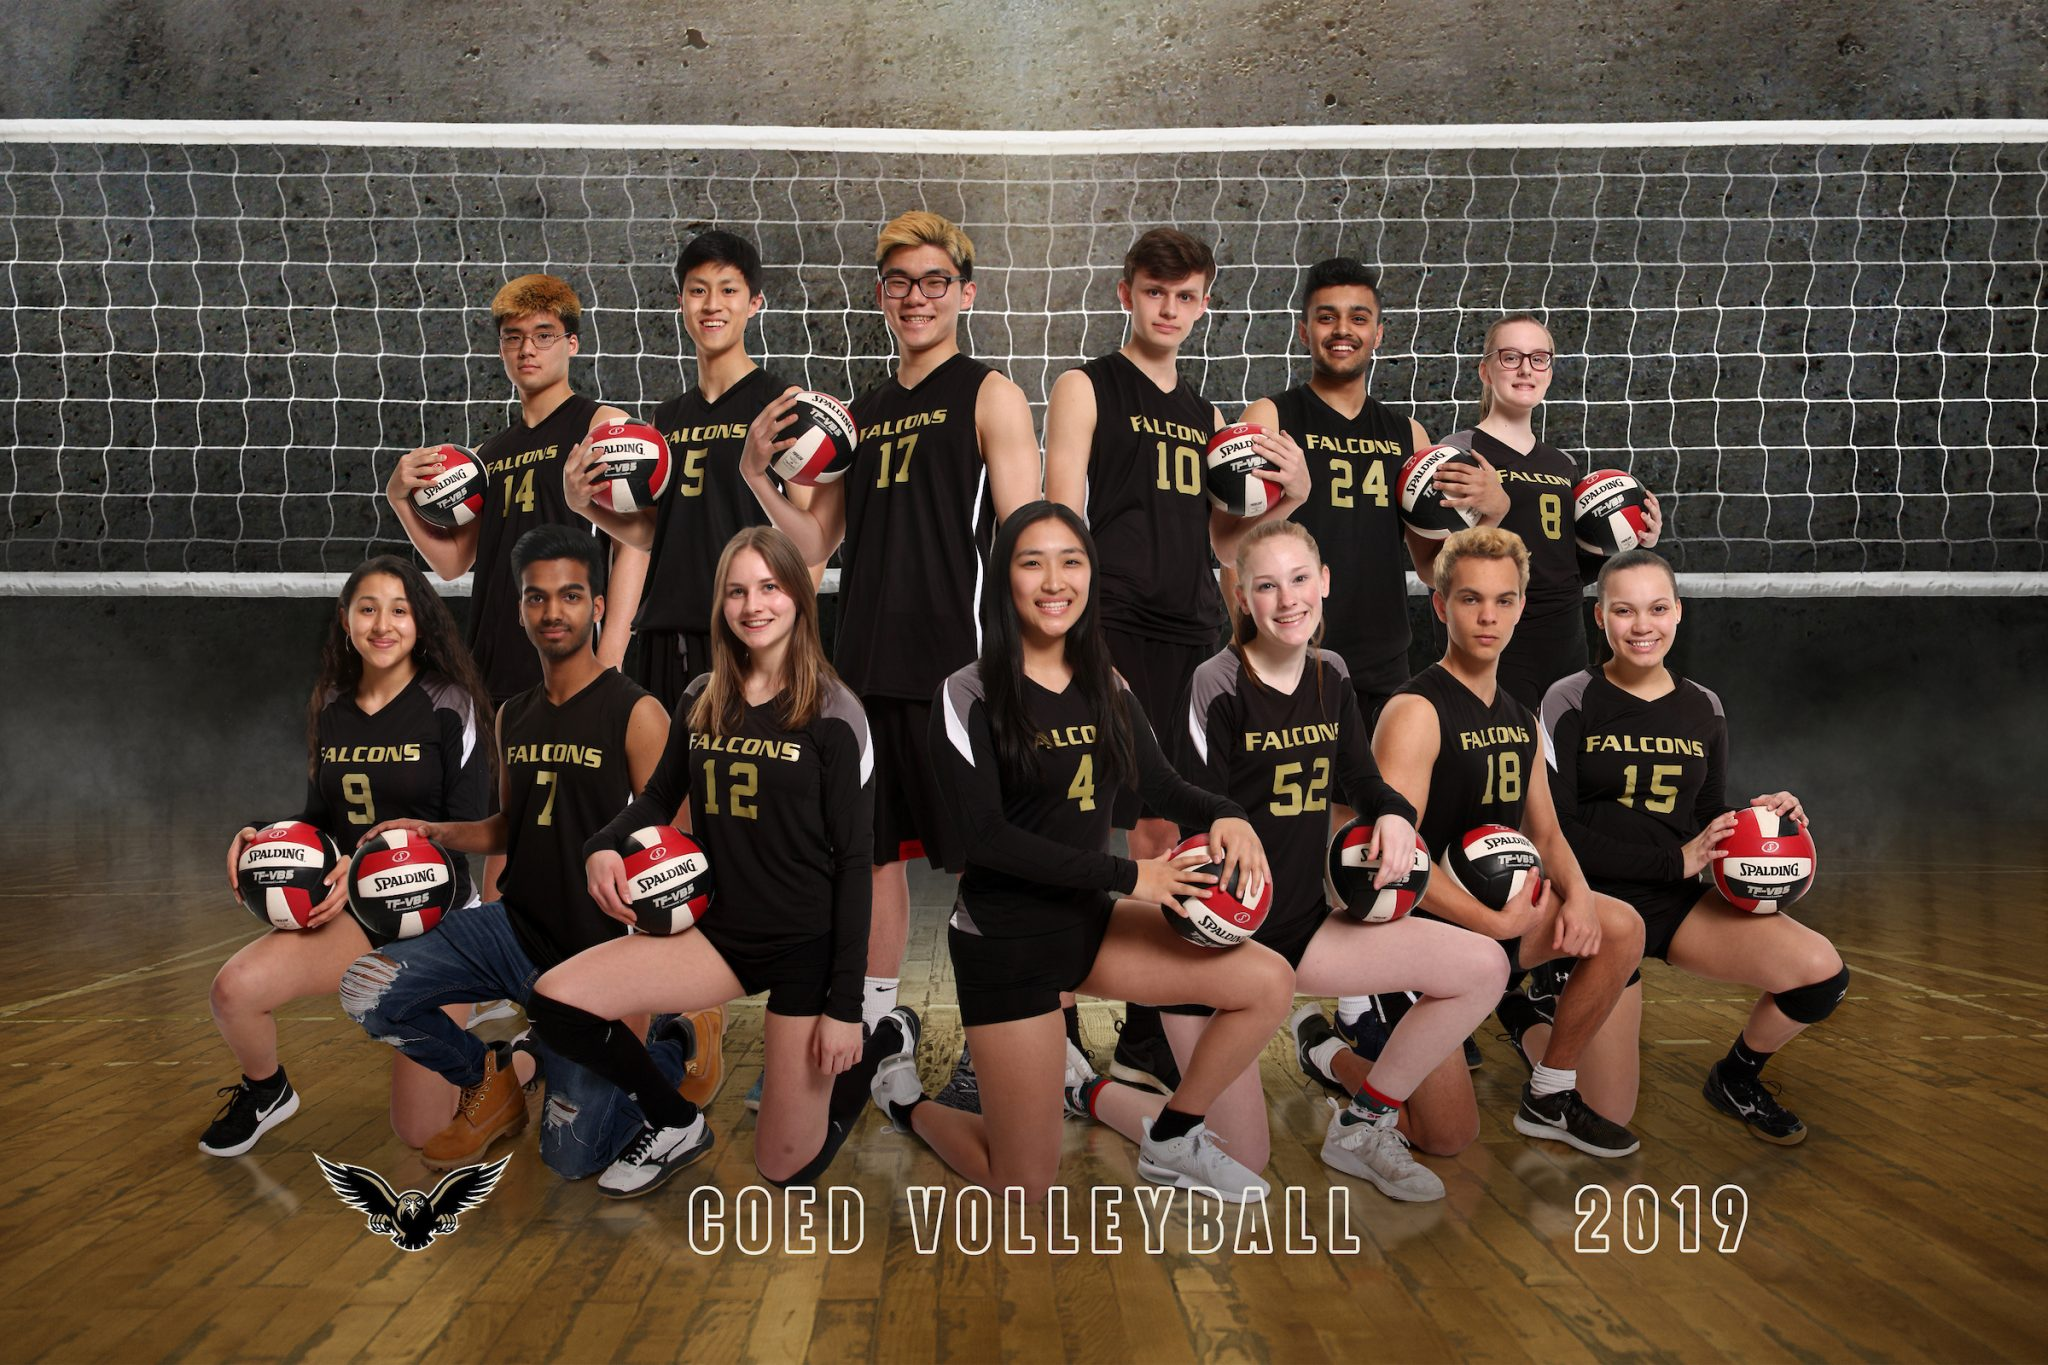 coed volleyball team picture